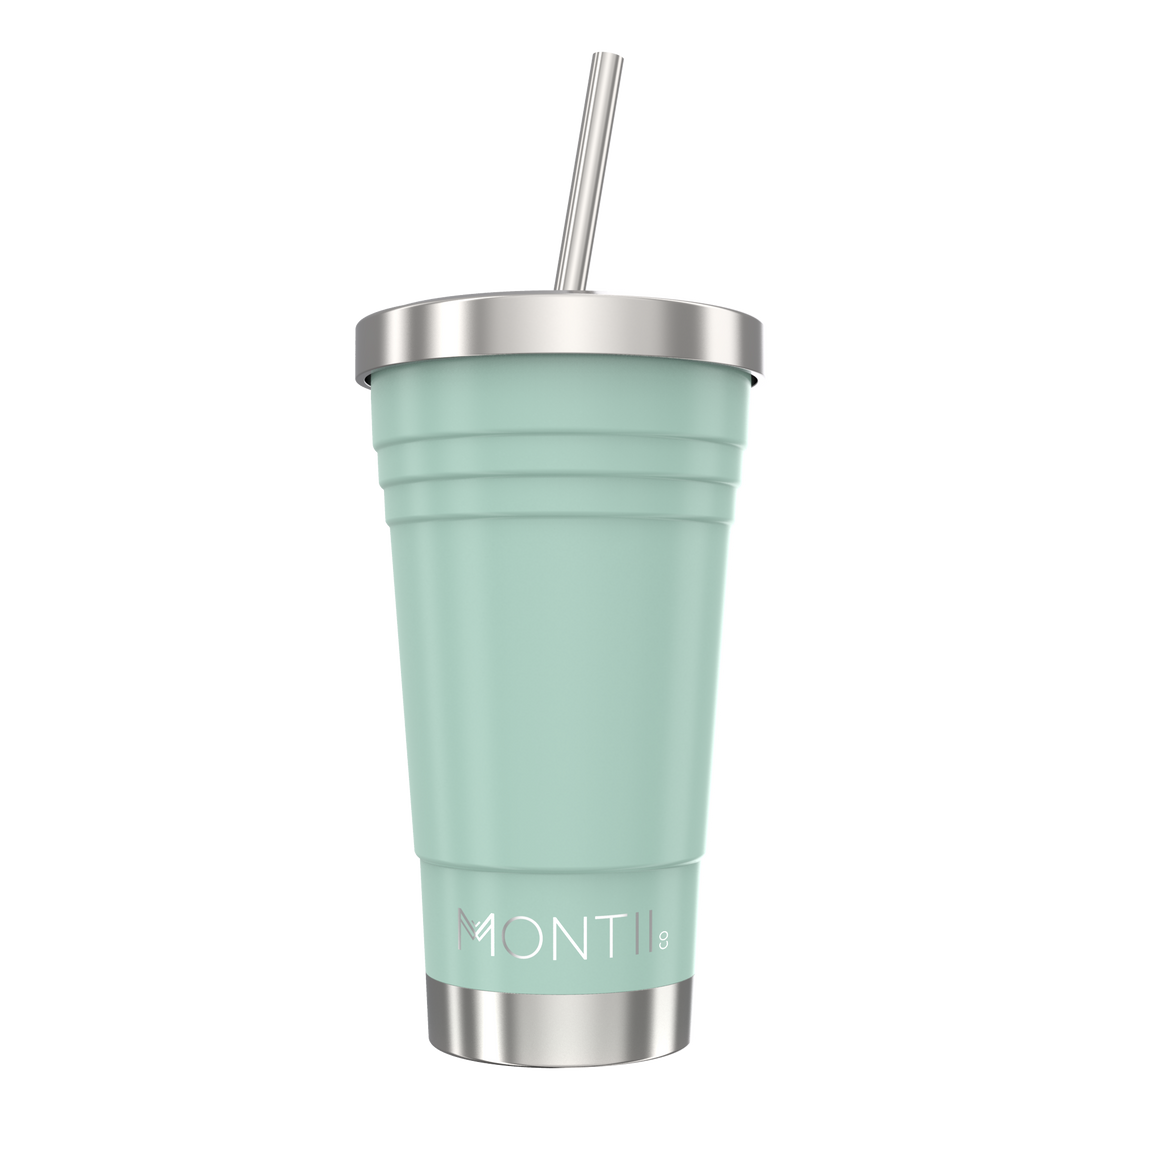 MontiiCo Smoothie Cup (450ml) - Eucalyptus